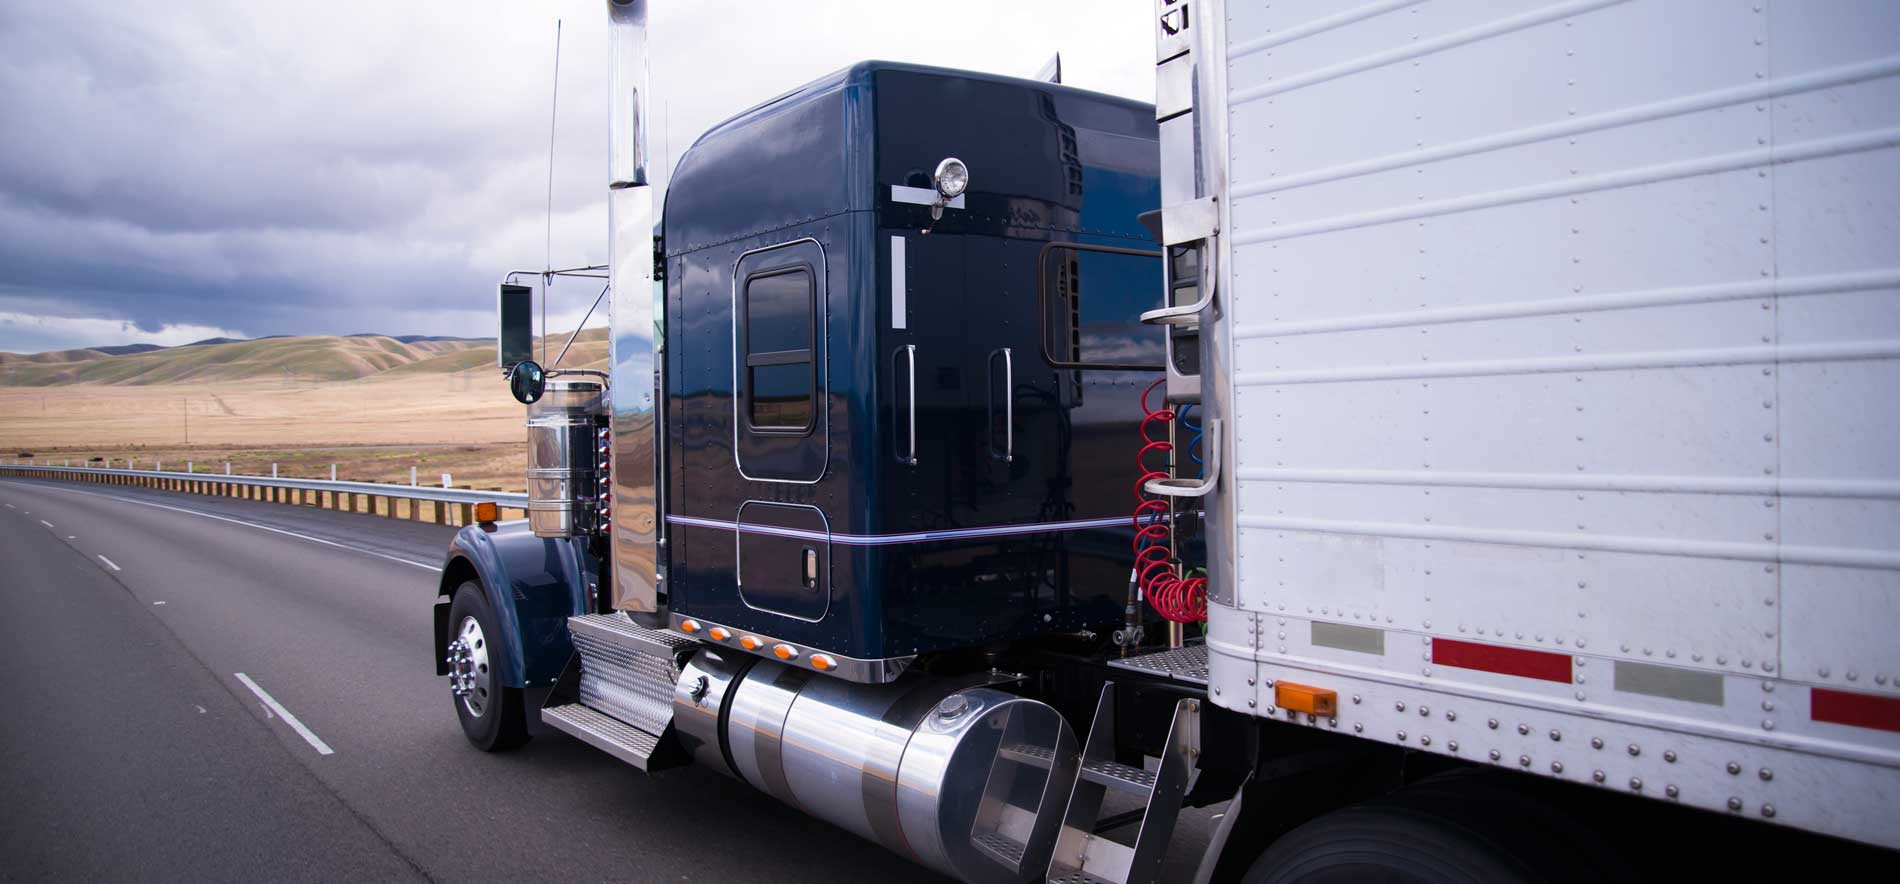 Tractor Trailer on-board scales help you avoid under or overloading